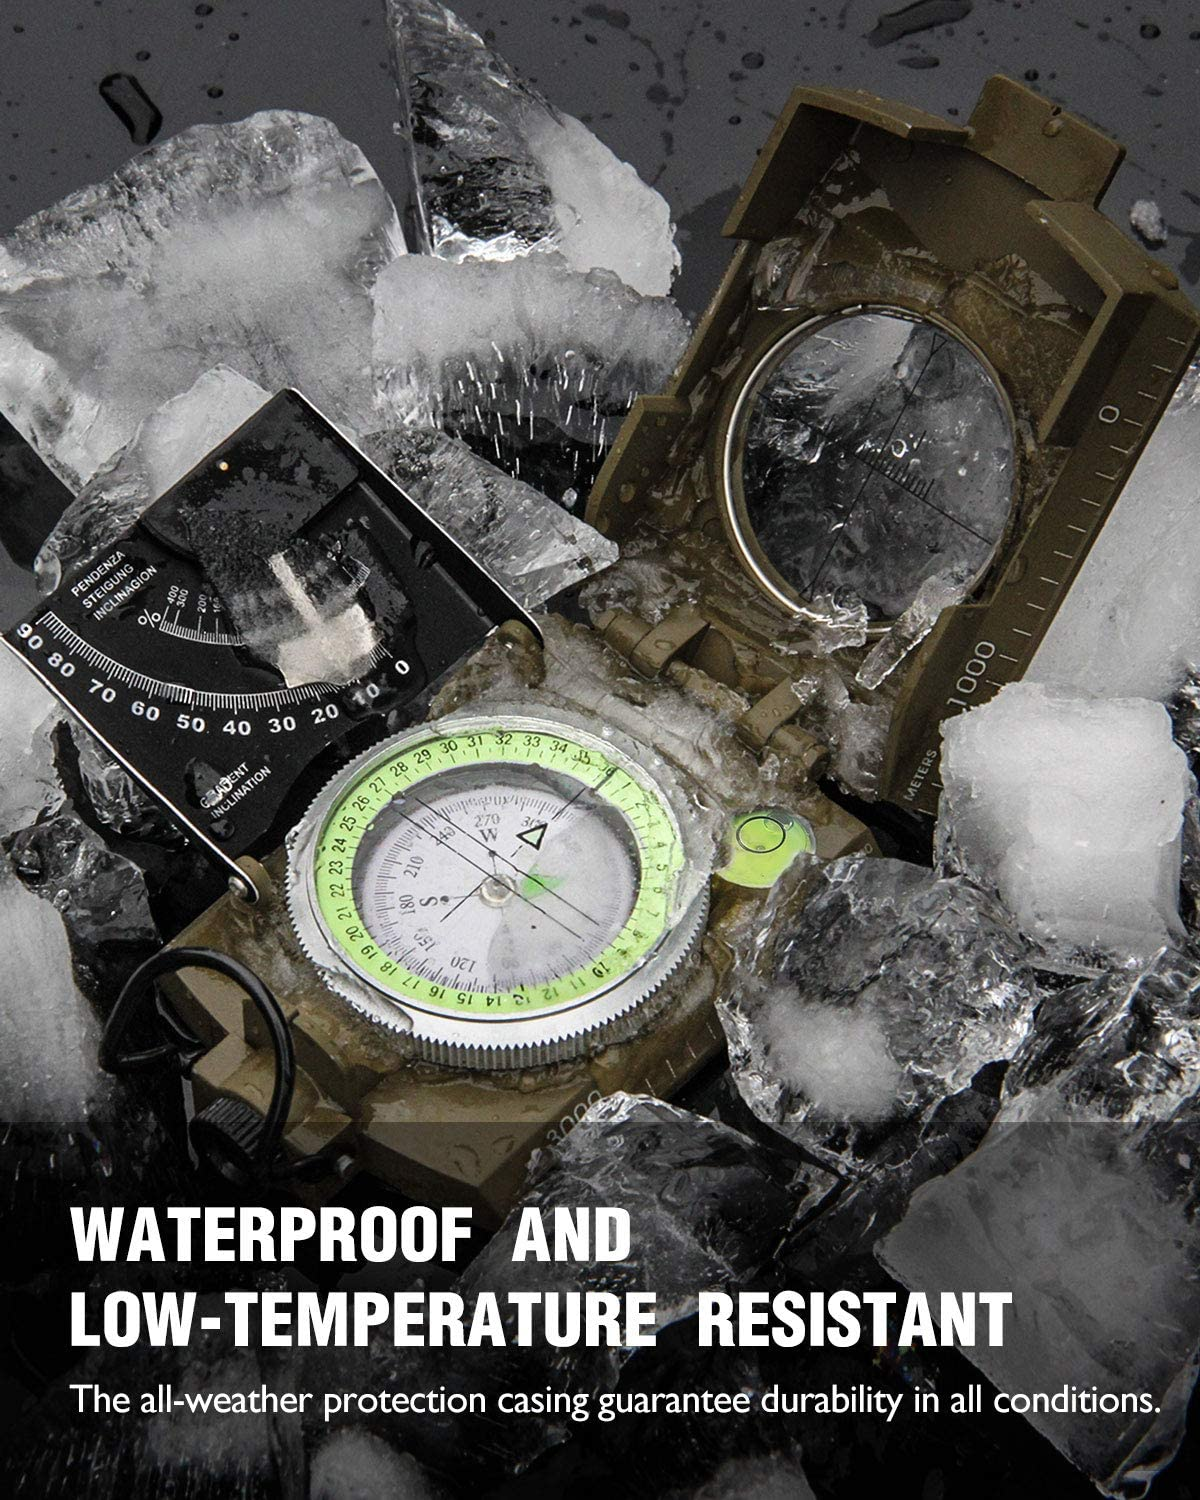 Eyeskey Multifunctional Military Metal Sighting Navigation Compass with Inclinometer | Impact Resistant & Waterproof Compass for Hiking, Camping, Boy Scout (Green) : Sports & Outdoors